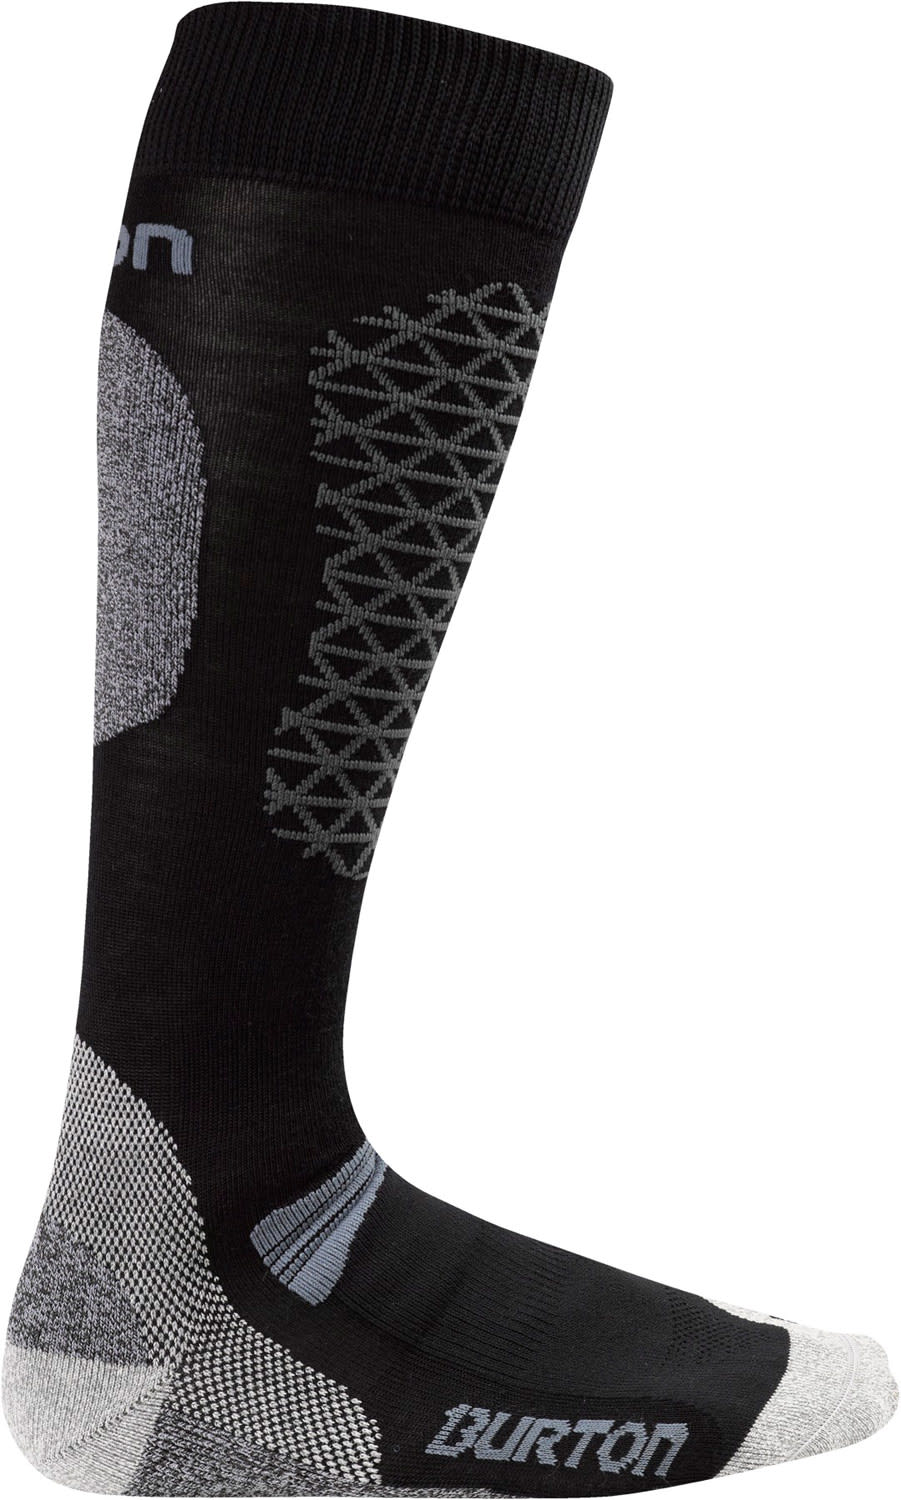 Shop for Burton Merino Phase Socks True Black - Men's